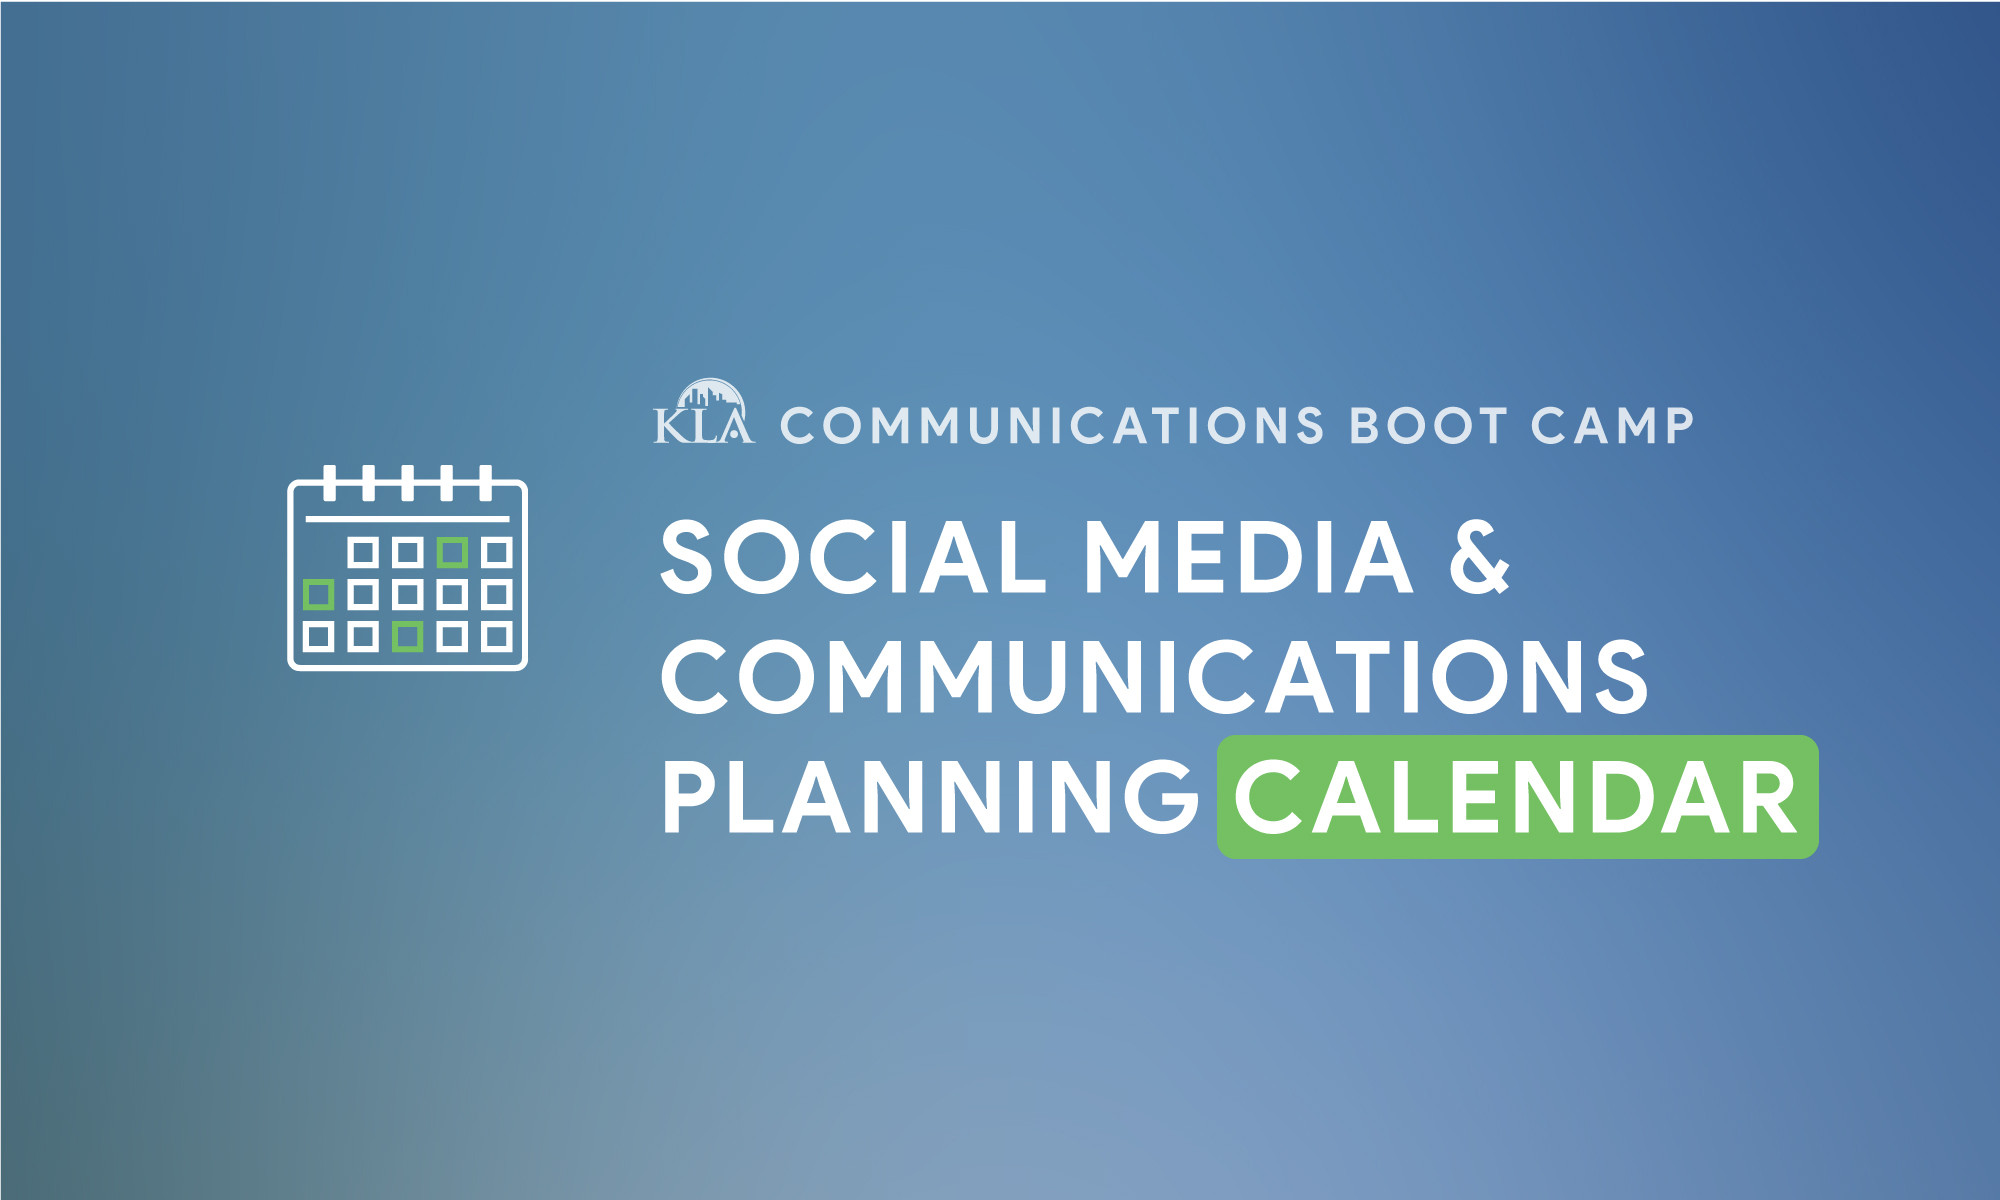 KLA_Bootcamp_Graphics_Social_Media_Calendar